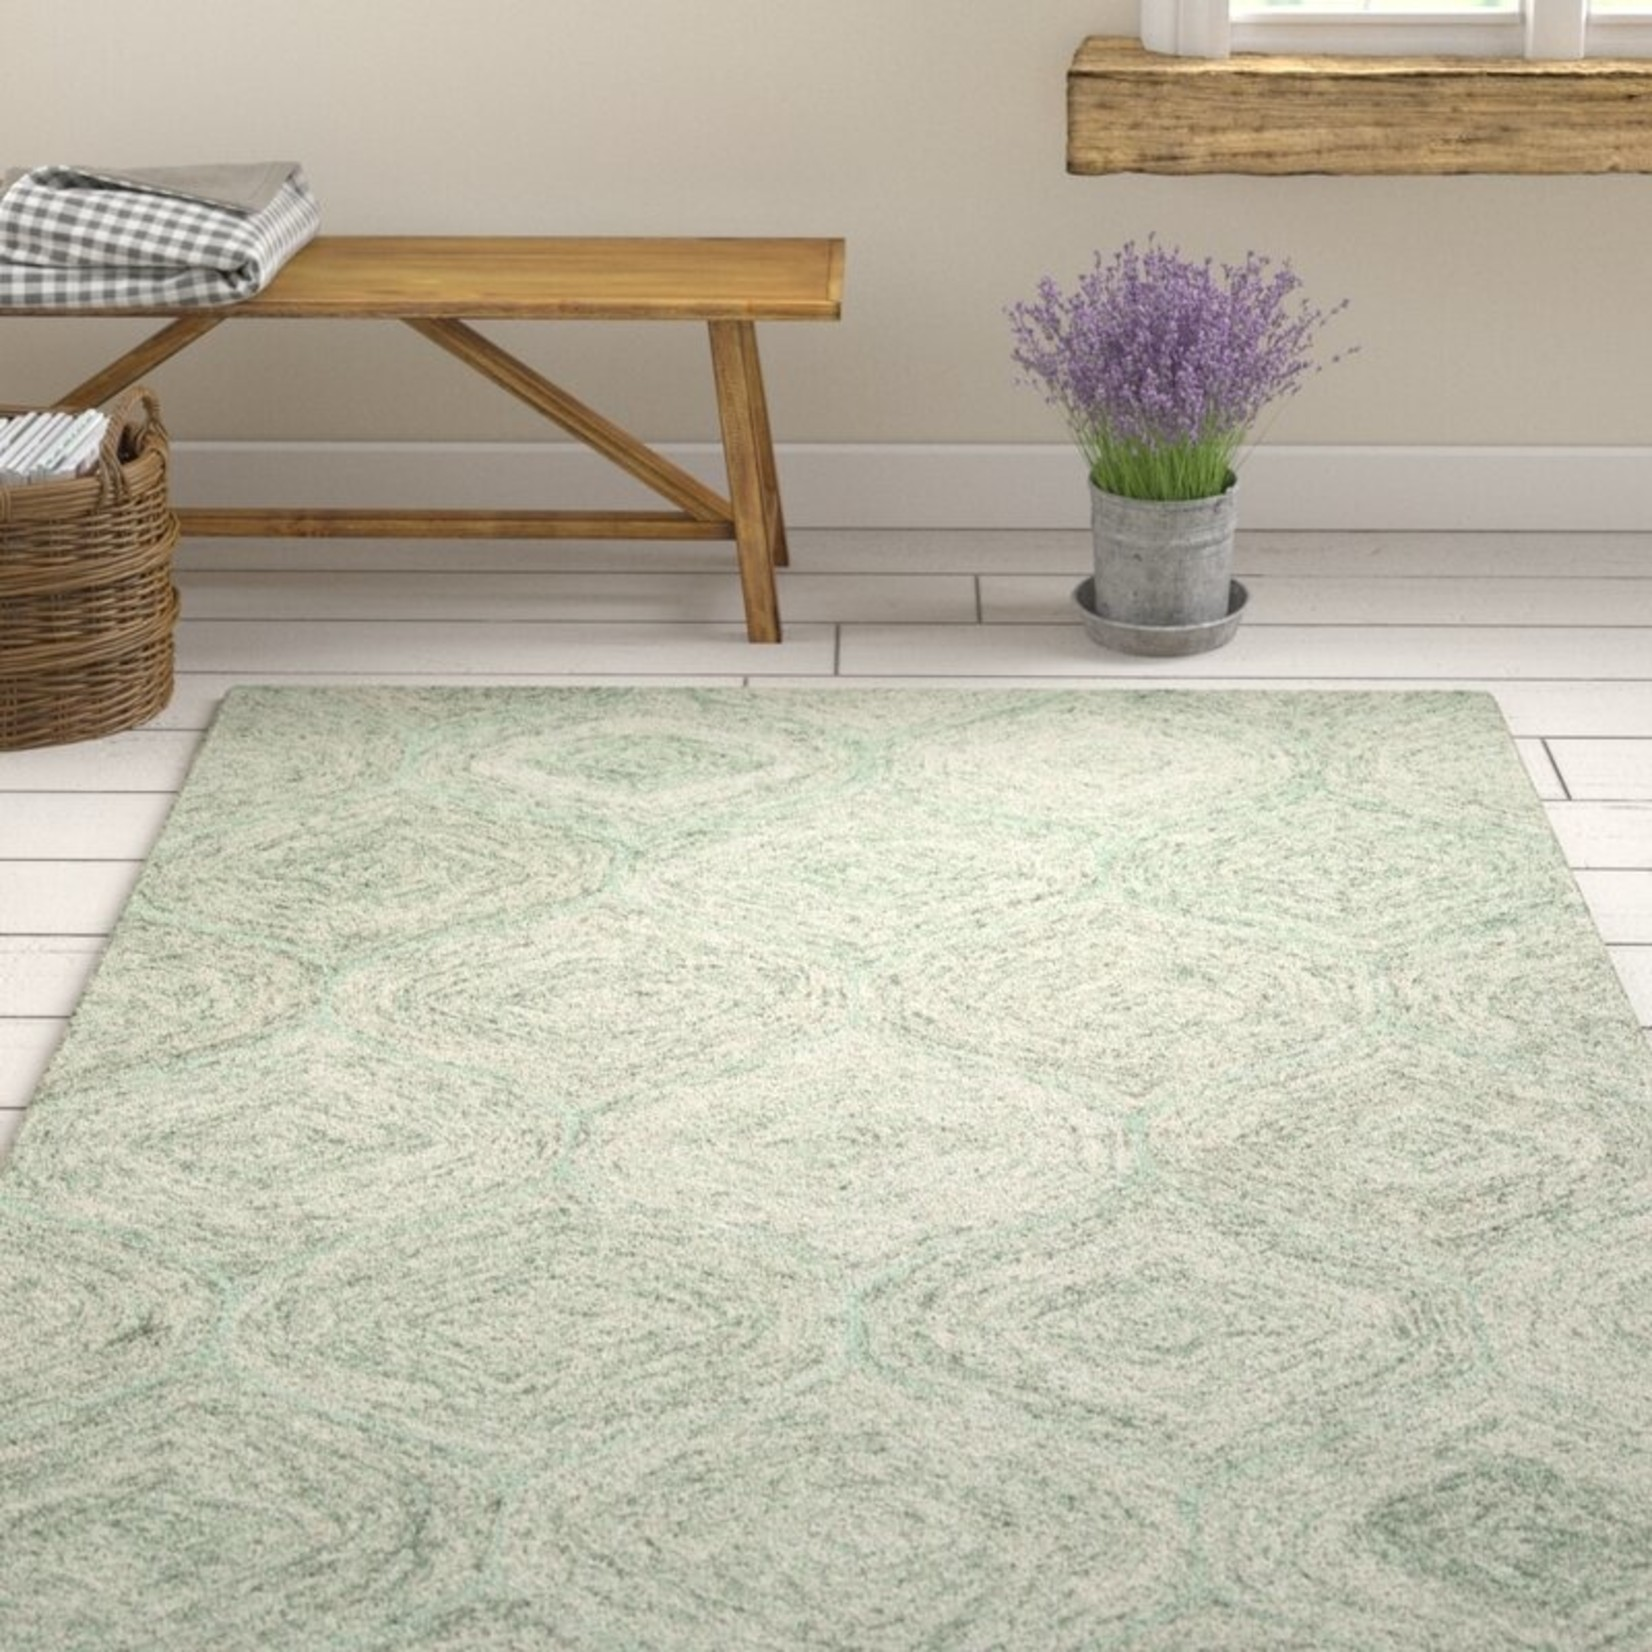 *8' x 10' - Pershing Hand-Tufted Wool Green Area Rug - Dirt on Back